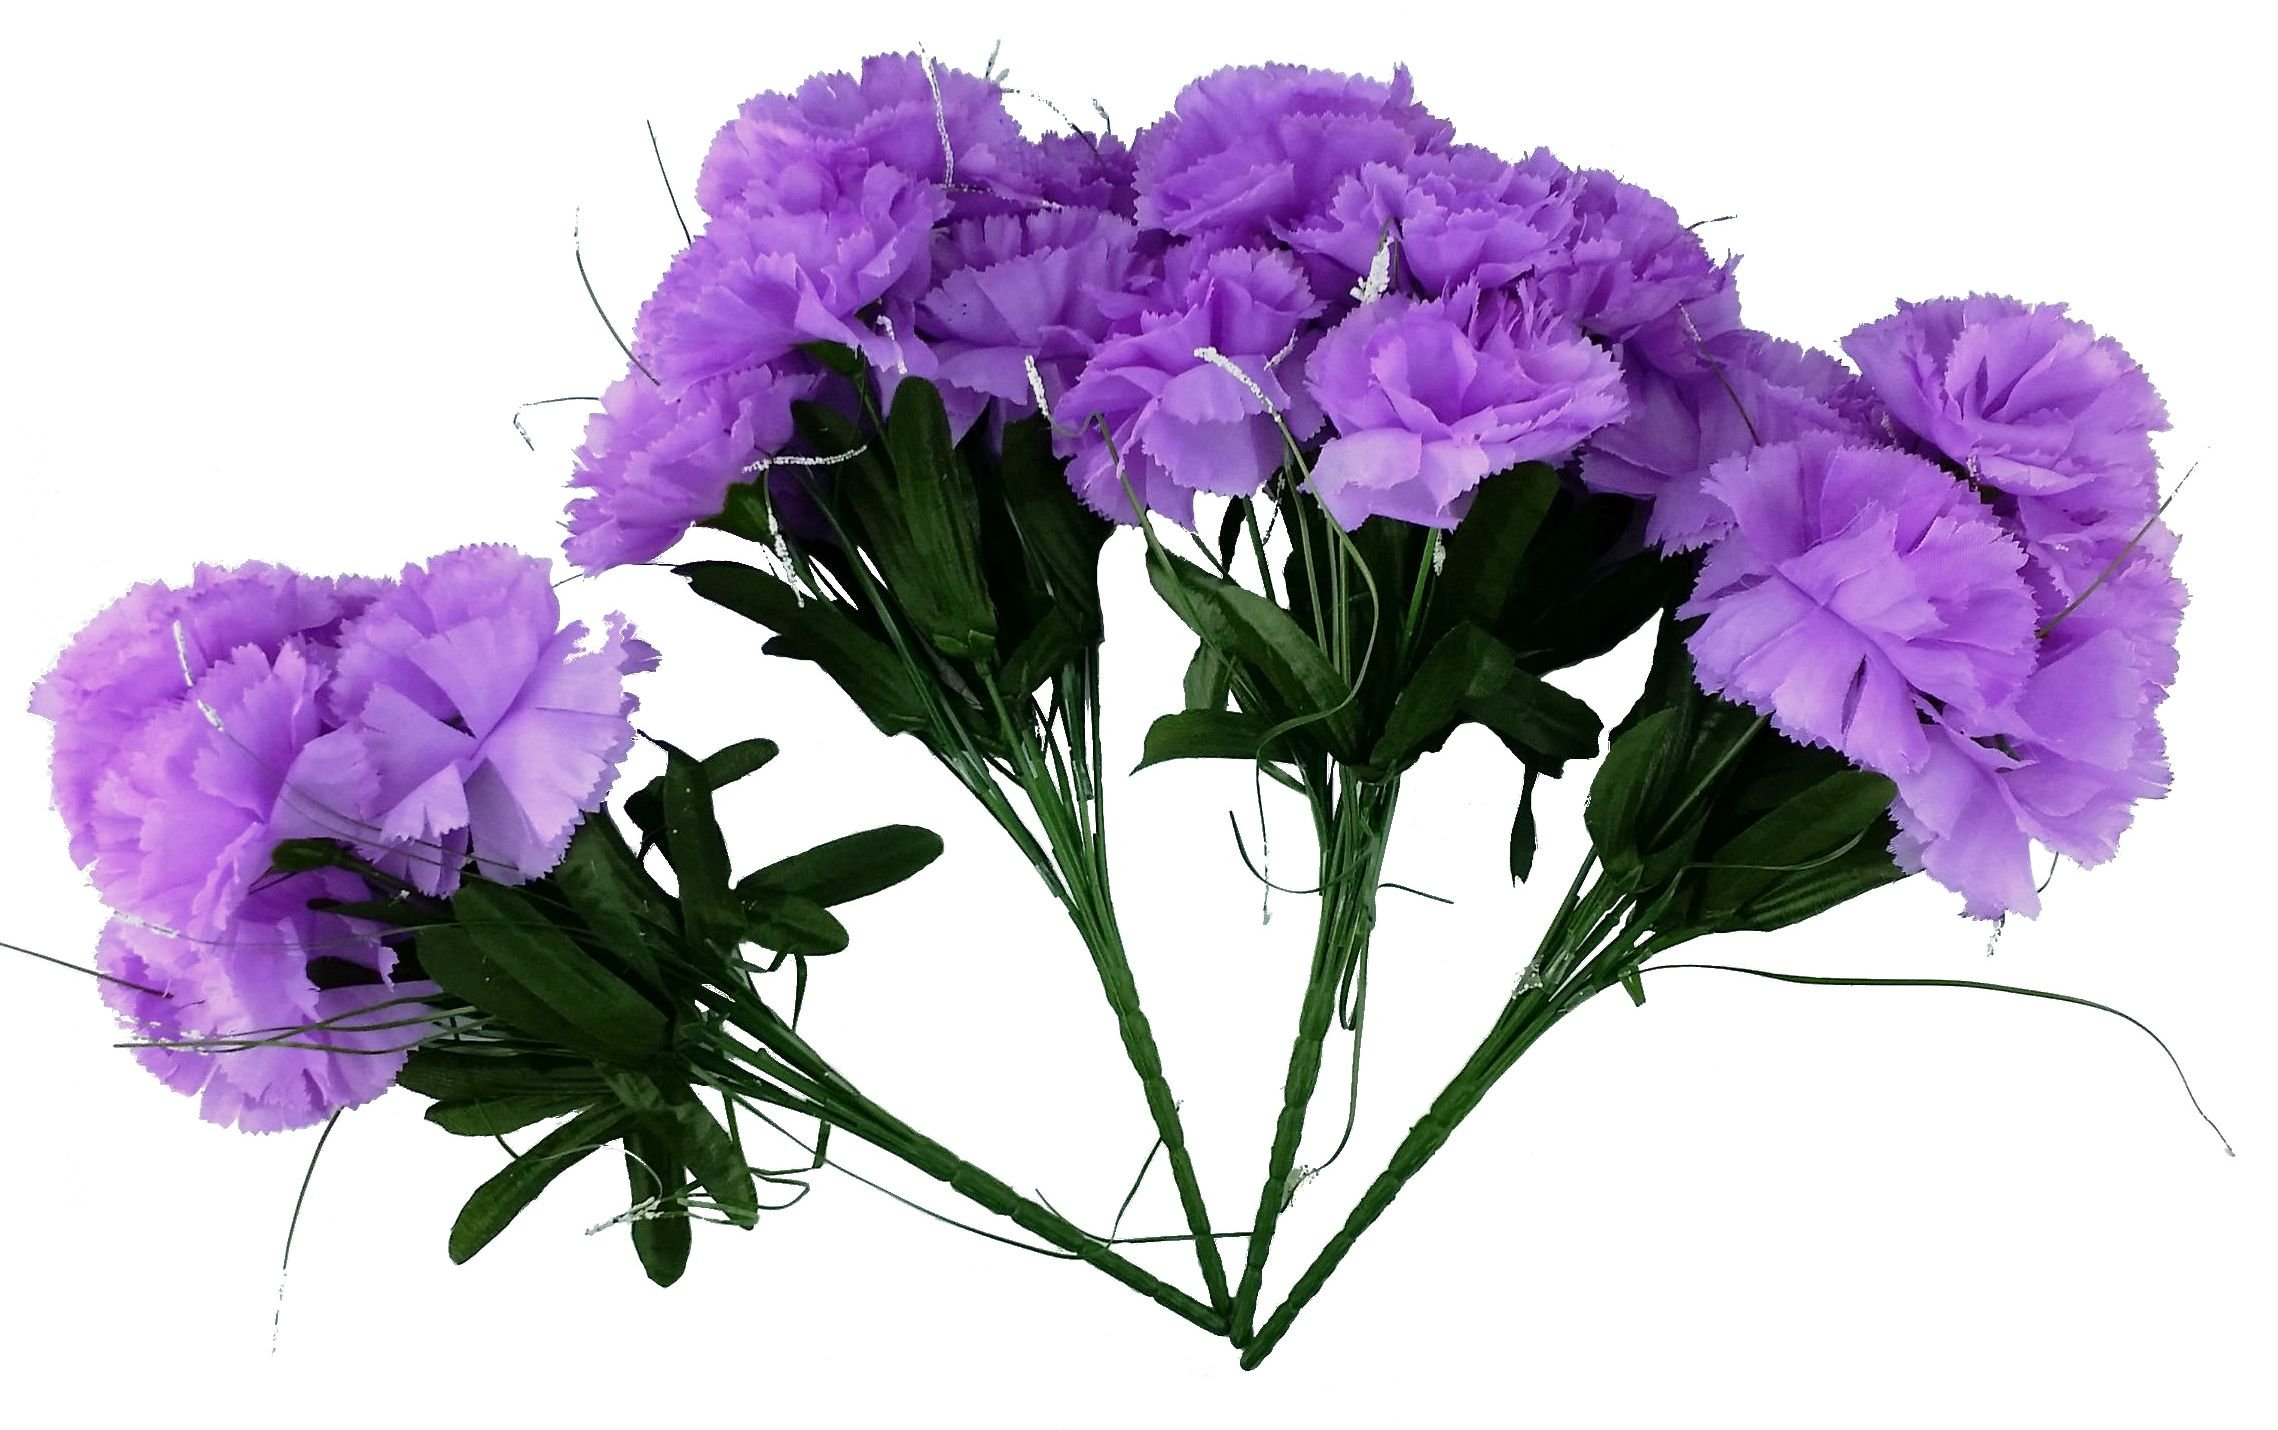 MM-TJ-Products-Artificial-Carnations-Bushes-7-stems-Pack-of-4-bushes-Lavender